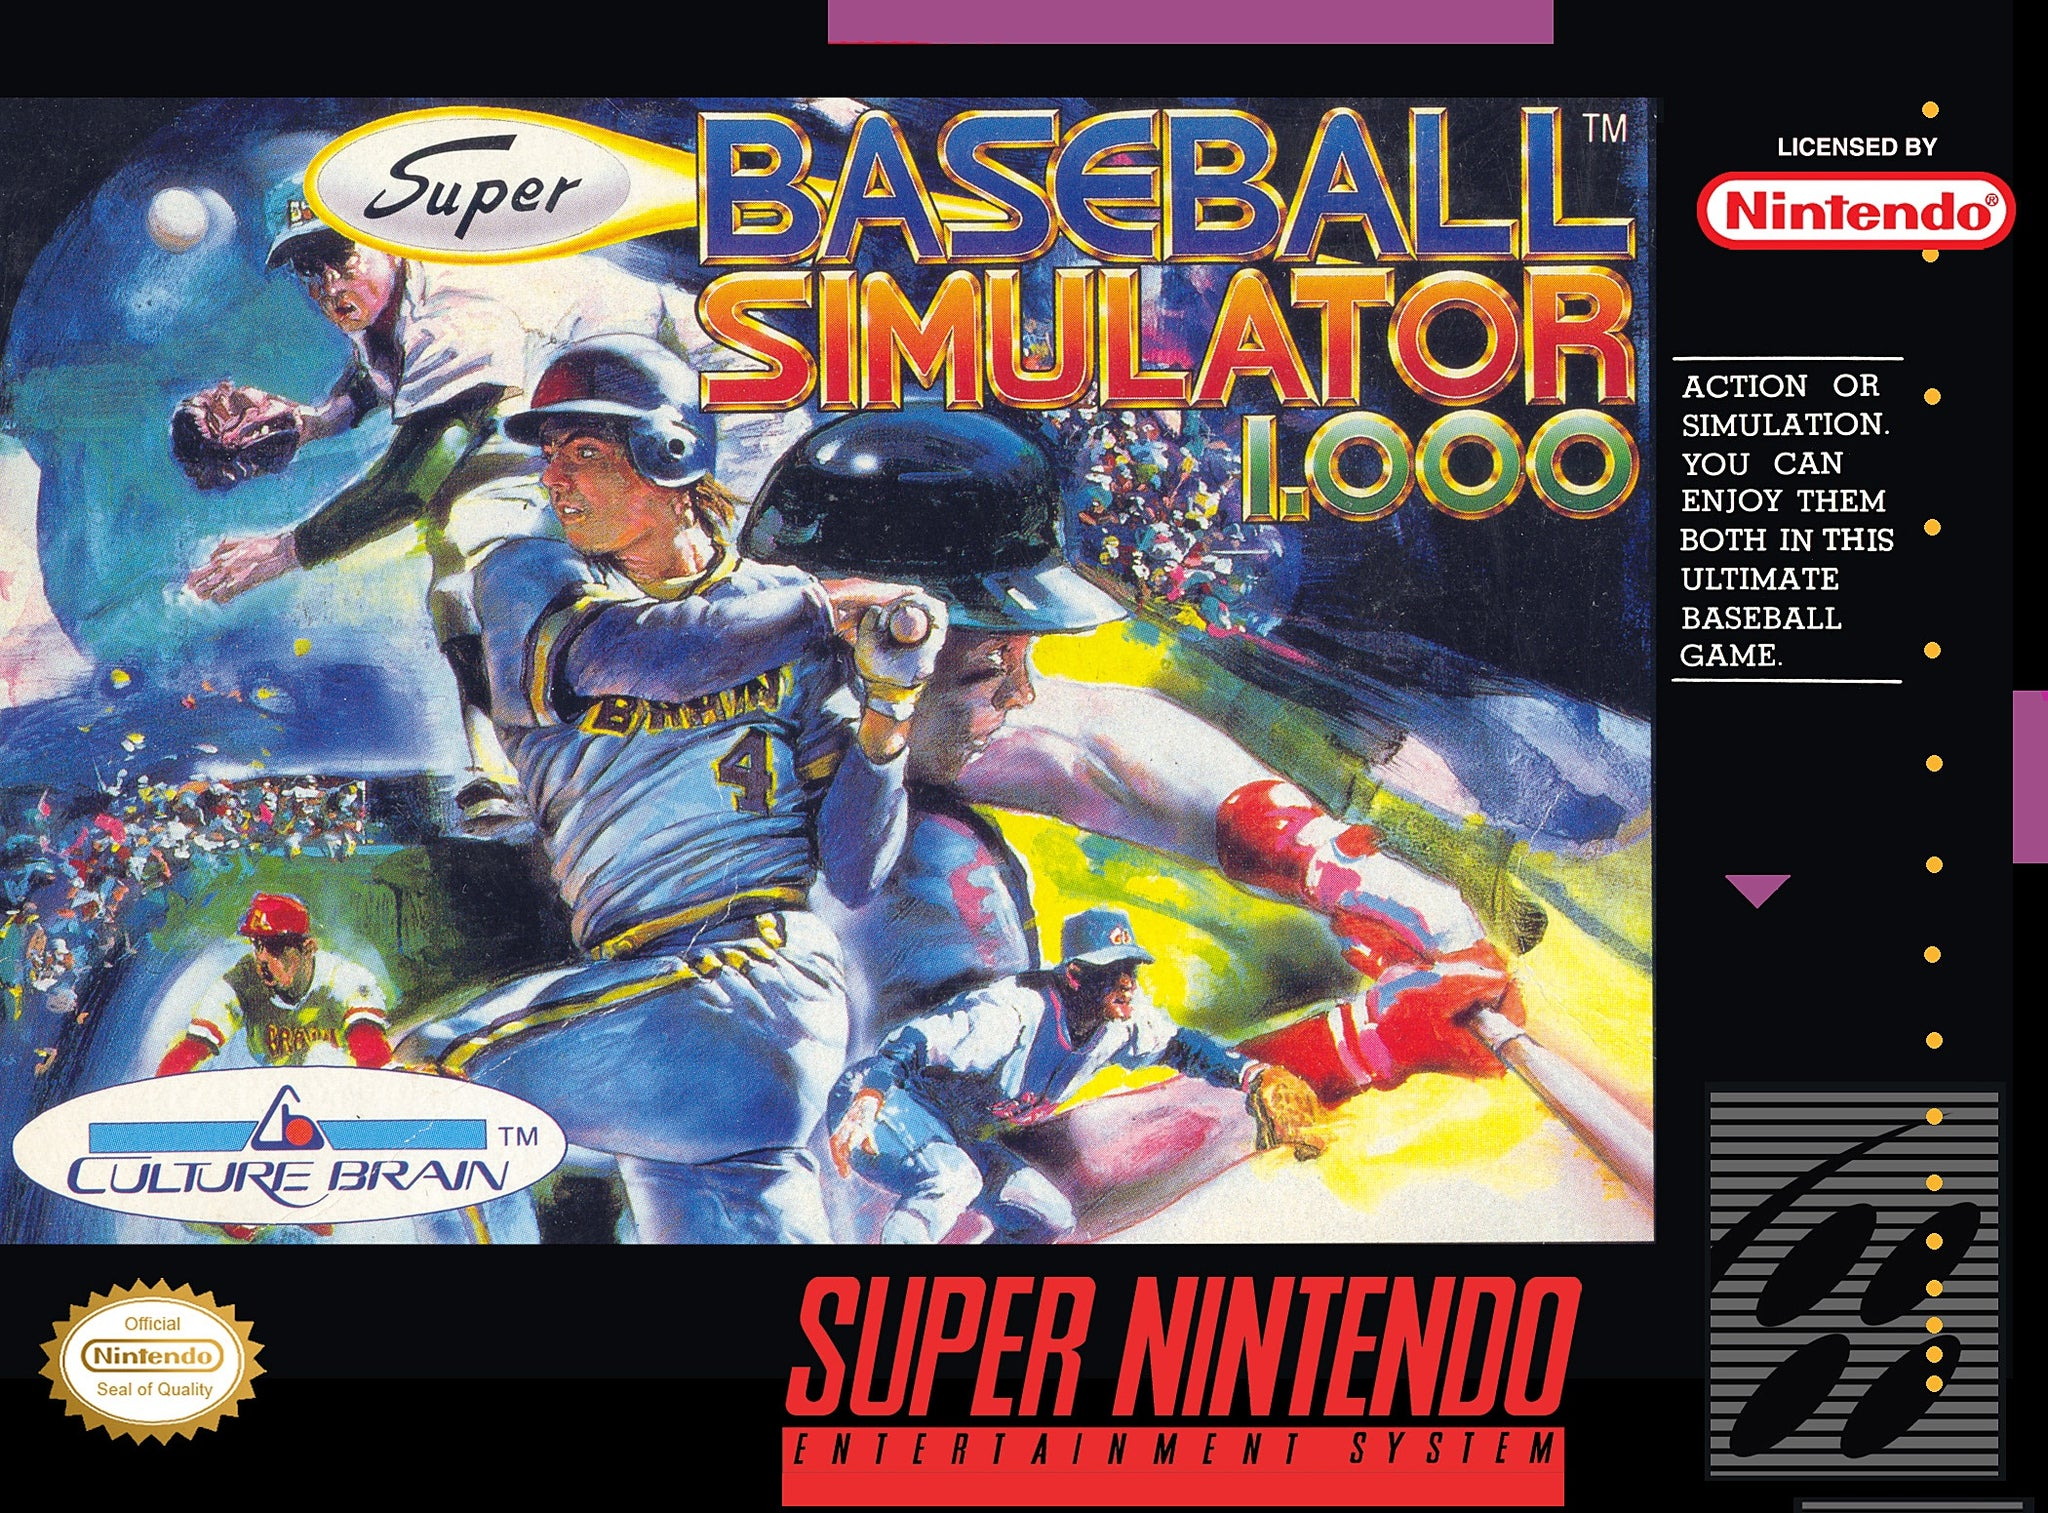 Super Baseball Simulator 1.000 - SNES (Pre-owned)